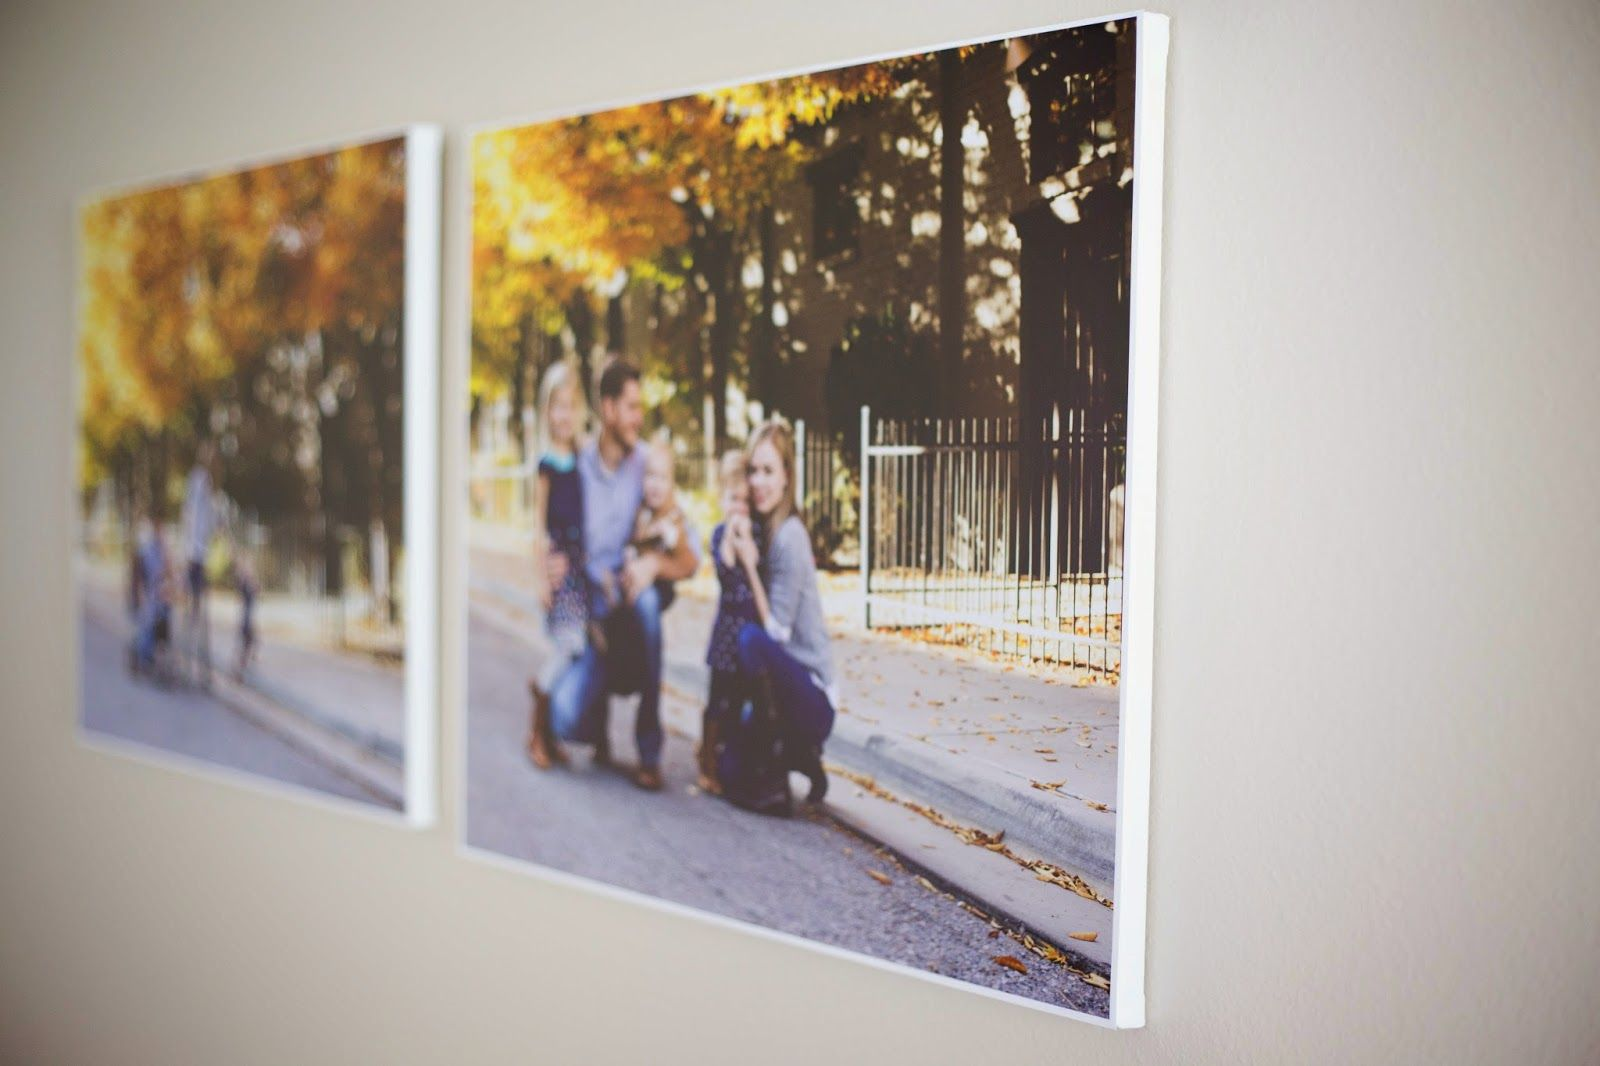 Do it yourself divas diy how to make large canvas prints for less do it yourself divas diy how to make large canvas prints for less solutioingenieria Image collections